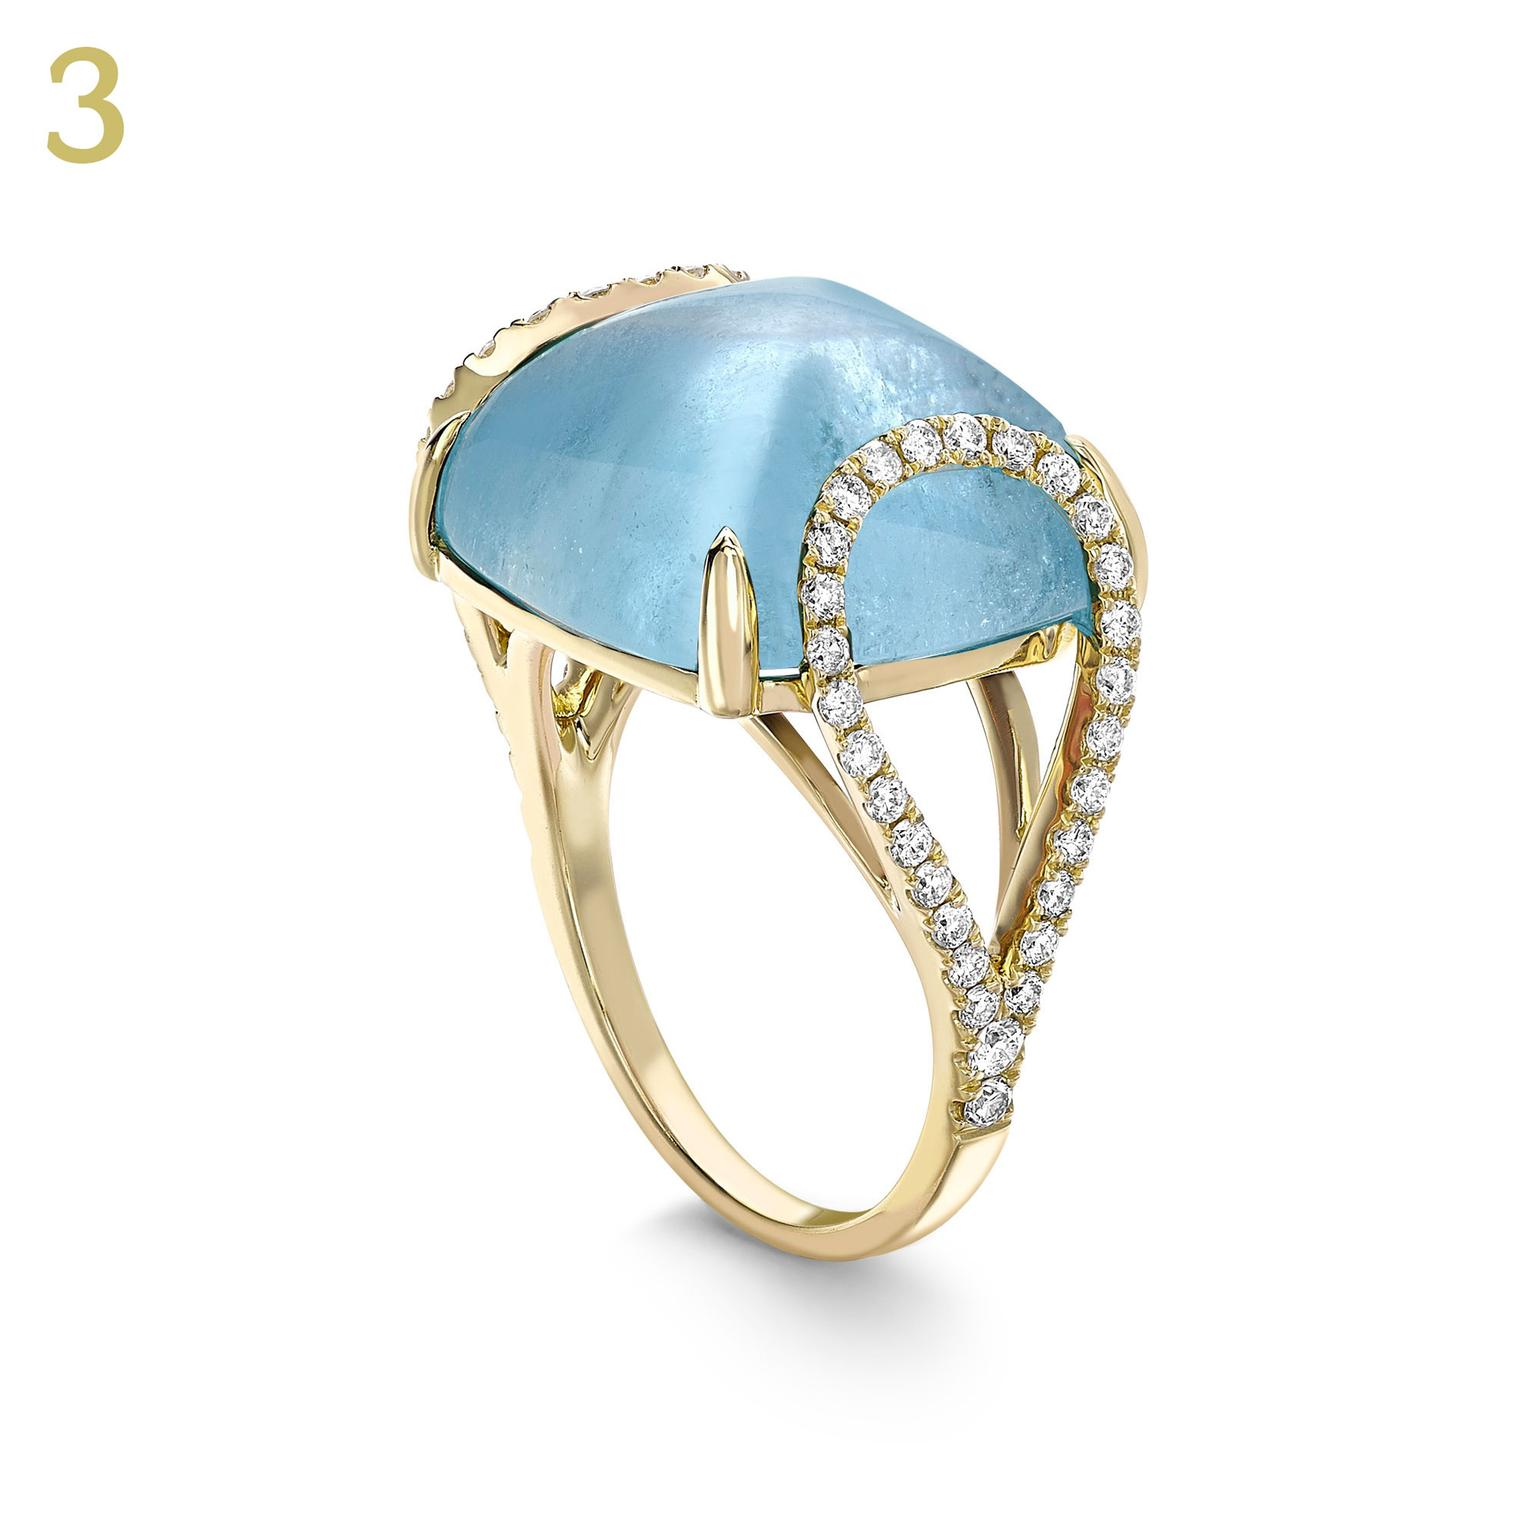 Kiki McDonough Luna aquamarine diamond ring